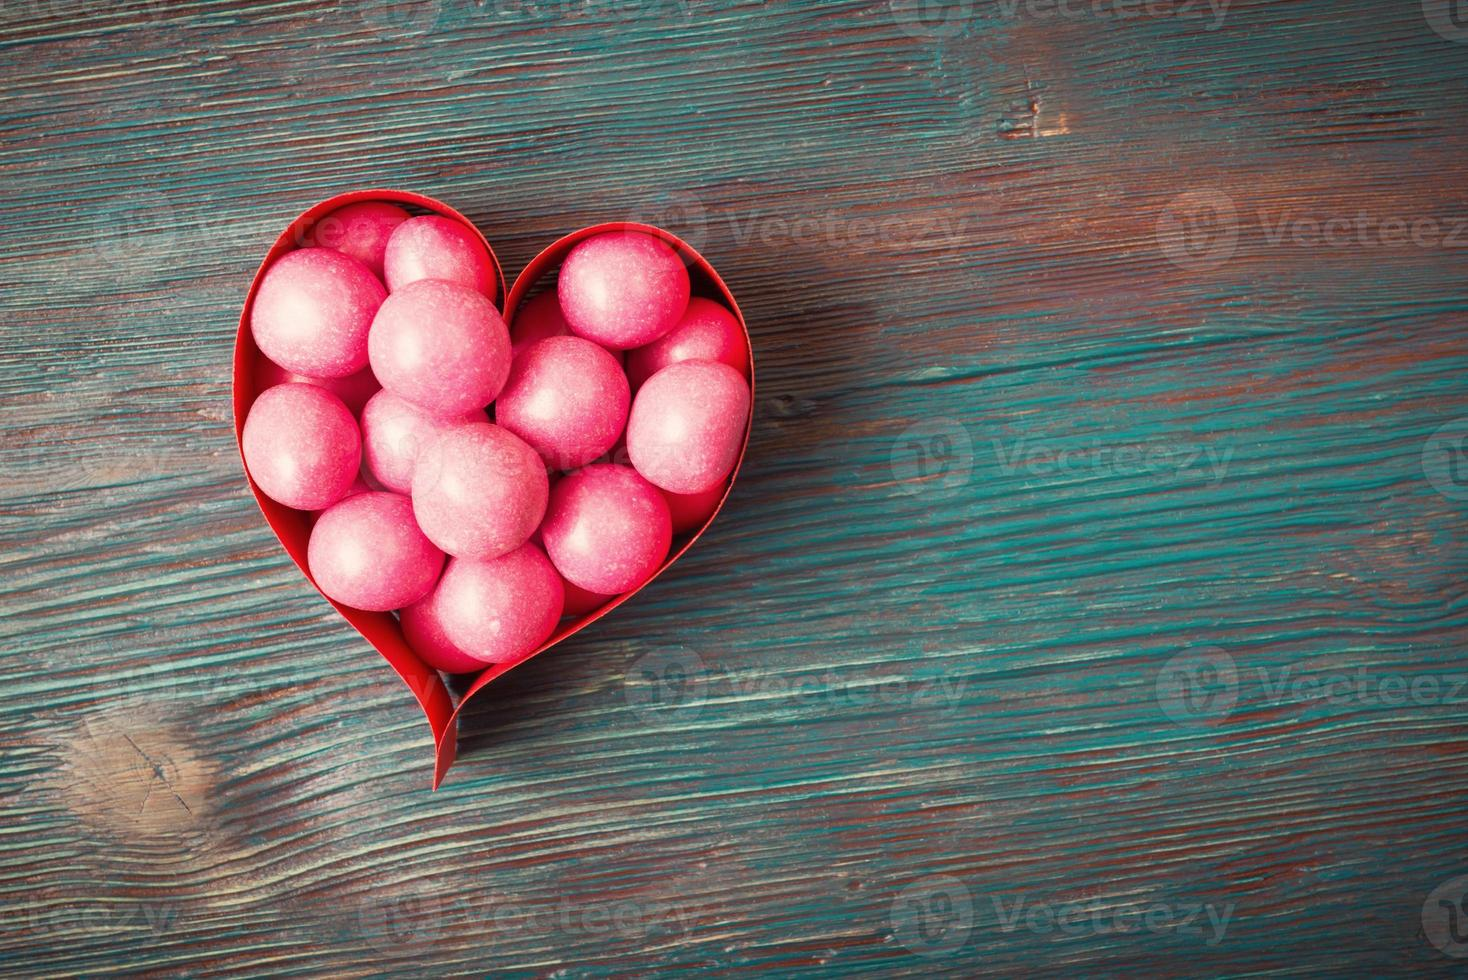 Sweet candies in heart shaped boxes on vintage wooden background photo